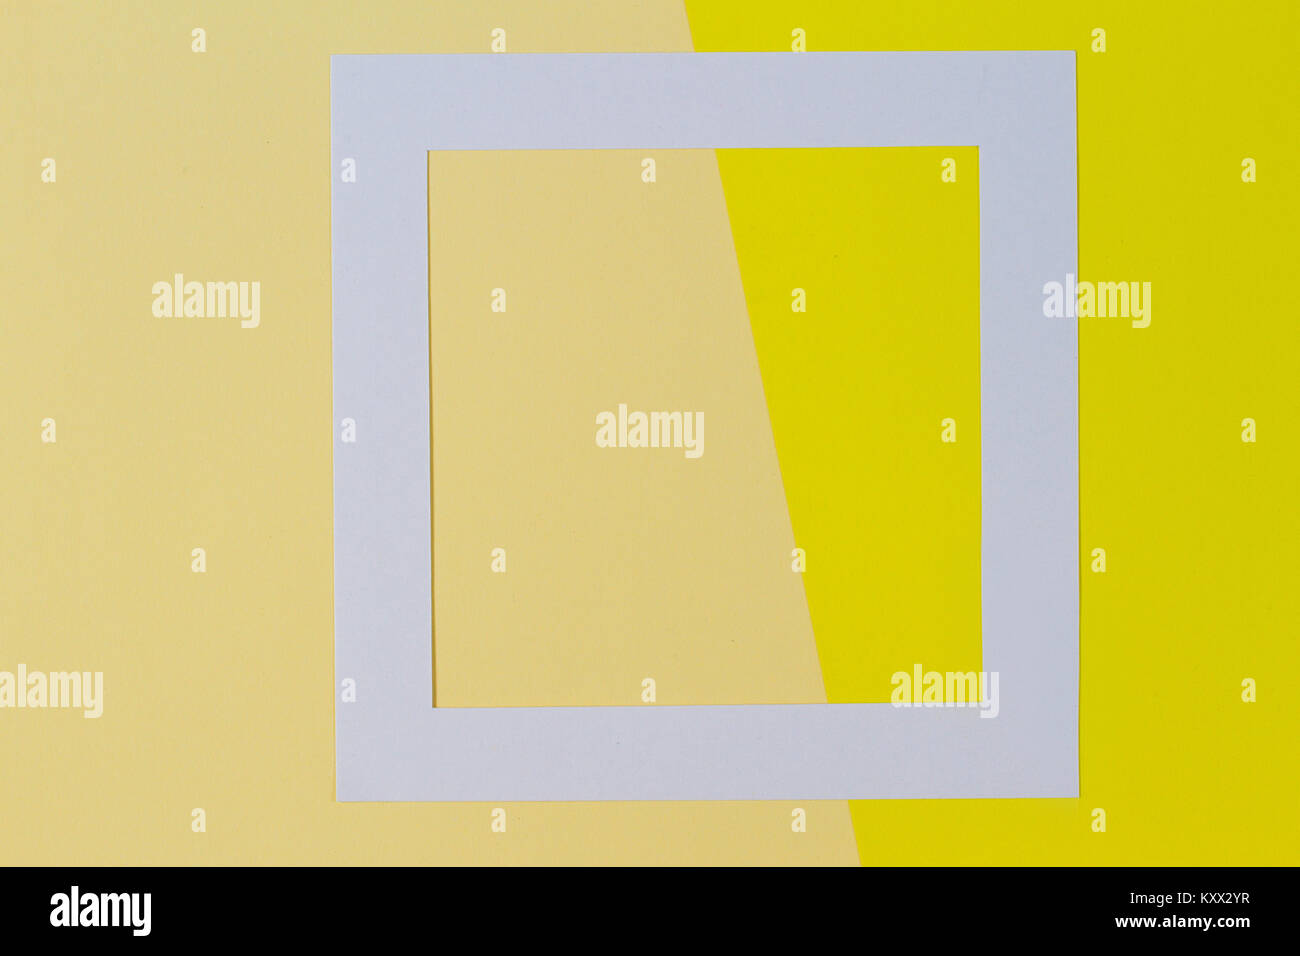 Empty white frame on two tones yellow background with copy space. - Stock Image